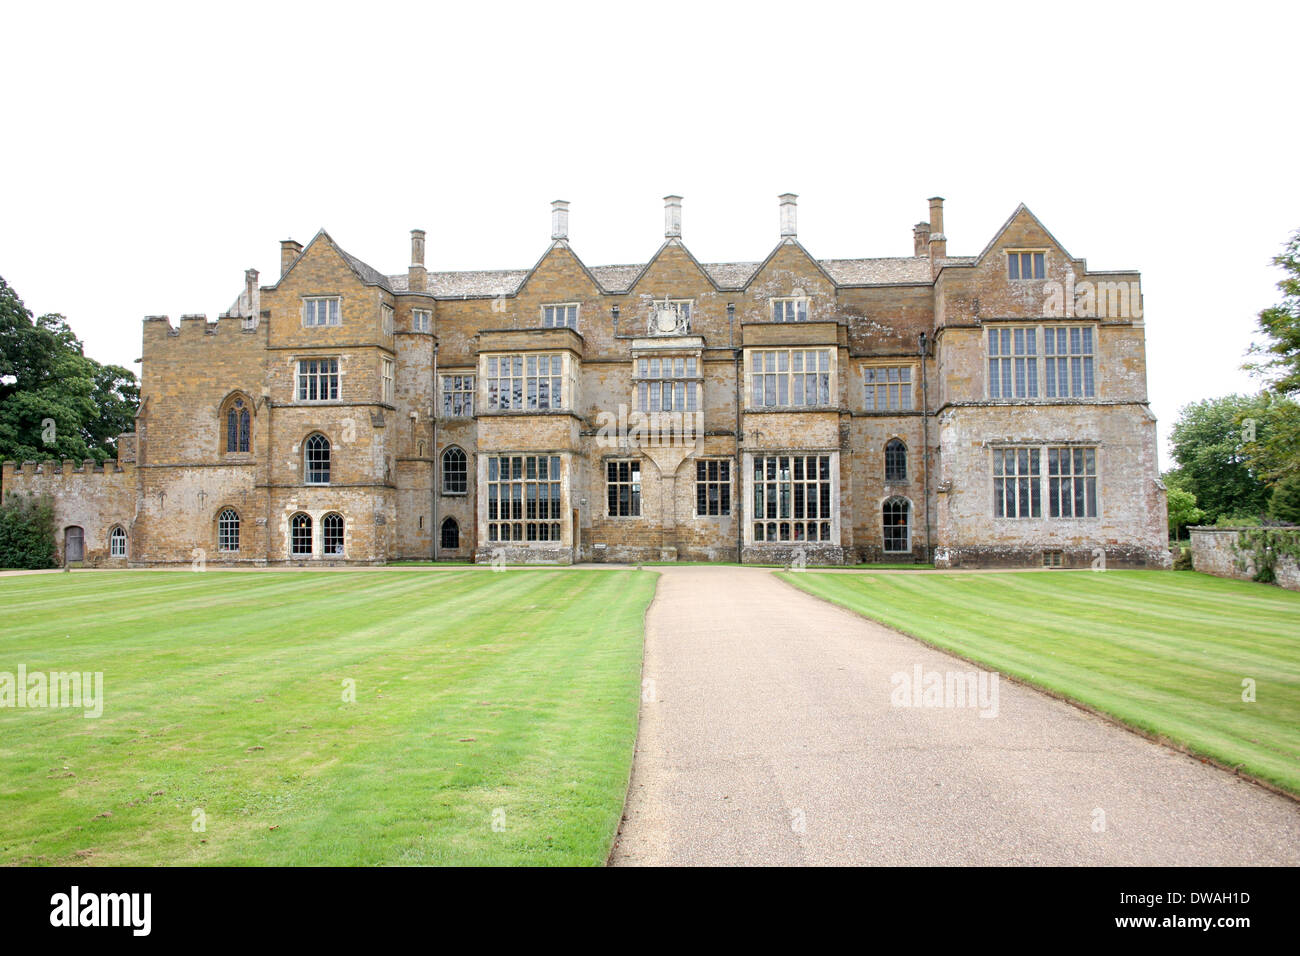 Broughton Castle, near Banbury, Oxfordshire. - Stock Image